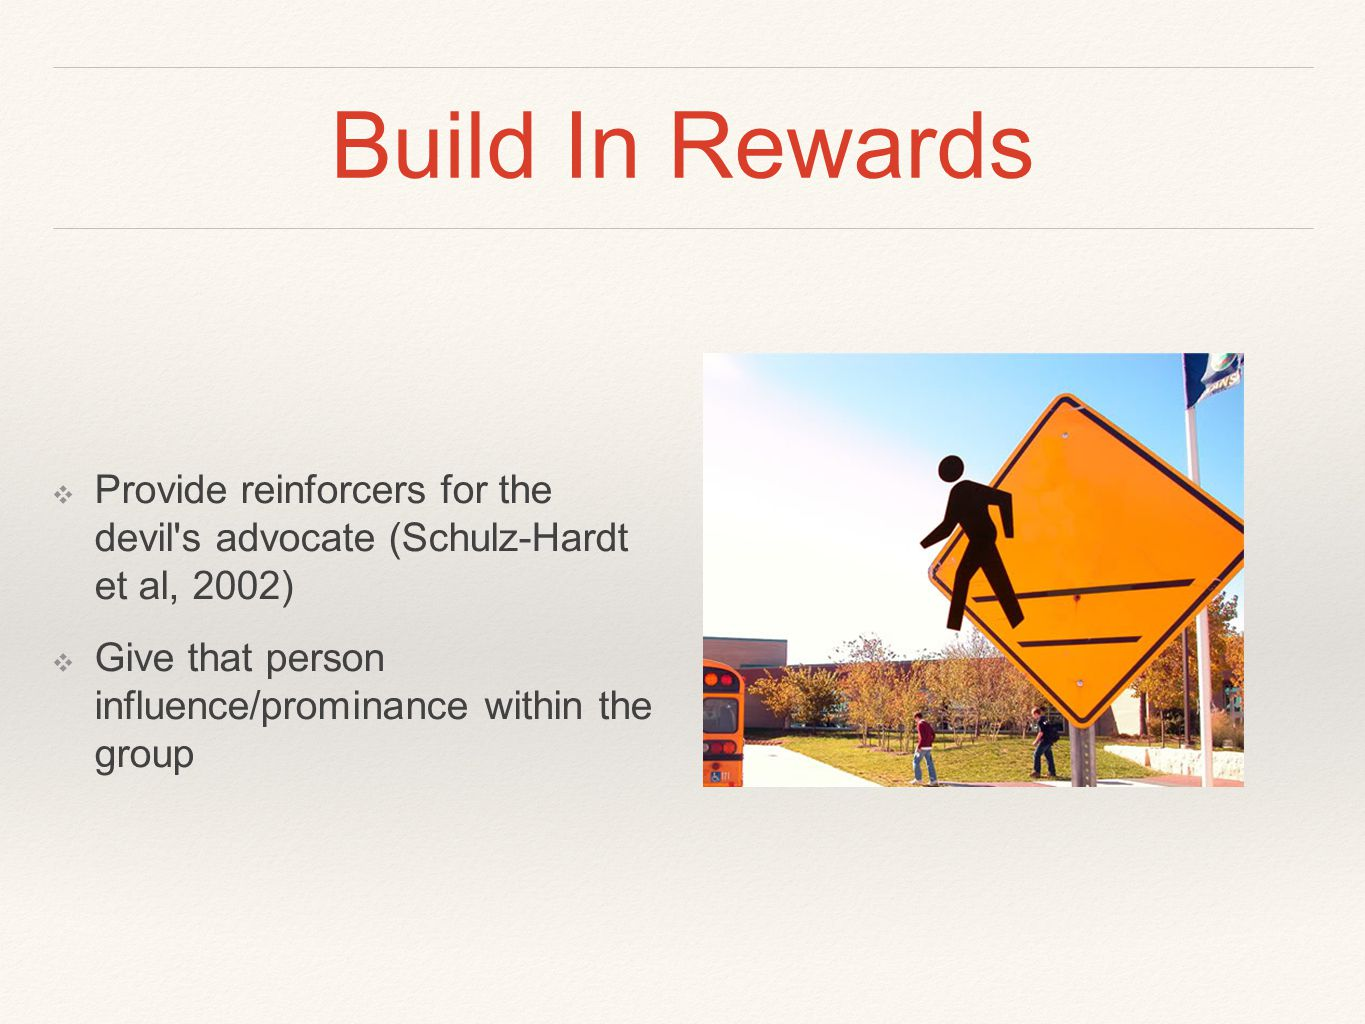 Build In Rewards ❖ Provide reinforcers for the devil s advocate (Schulz-Hardt et al, 2002) ❖ Give that person influence/prominance within the group